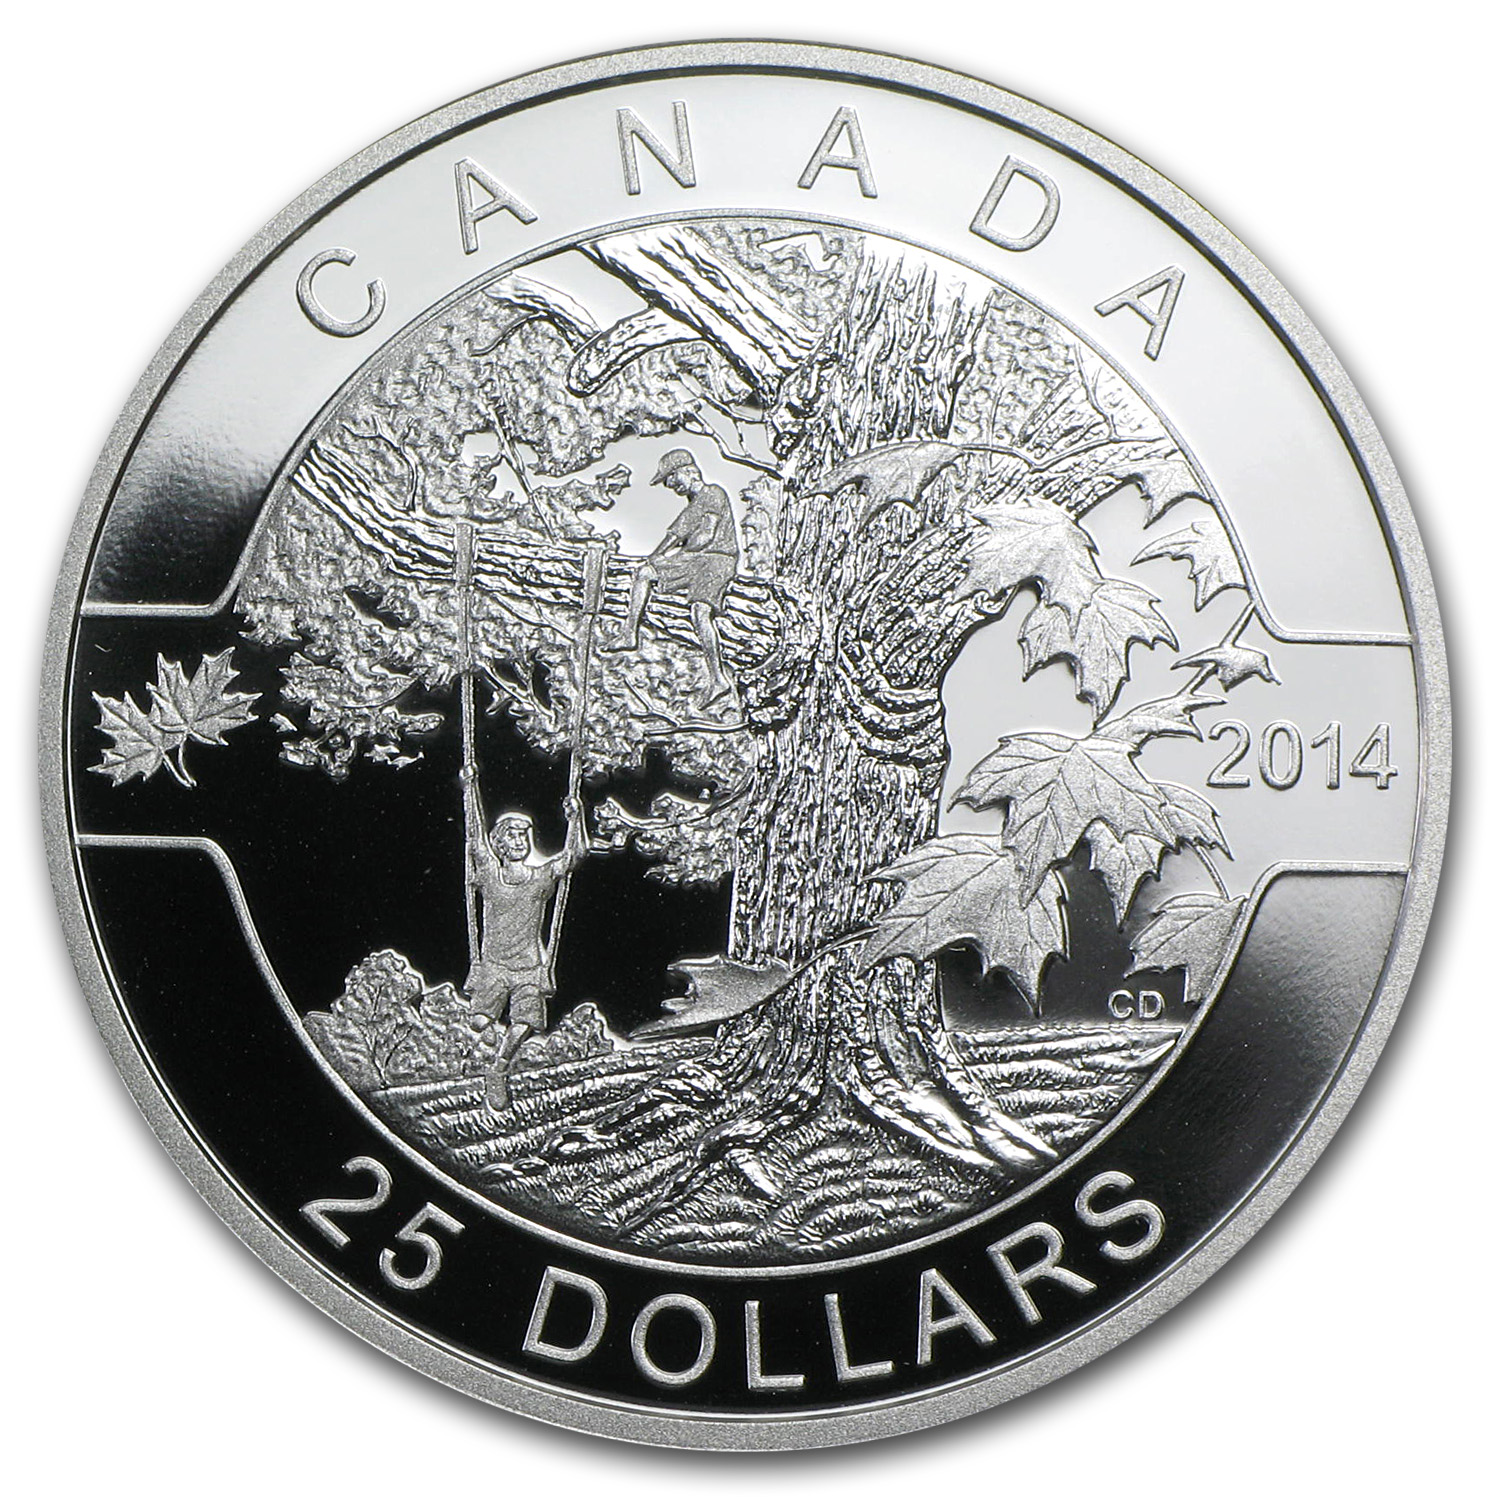 2014 1 oz Silver Canadian $25 Coin - Under The Maple Tree